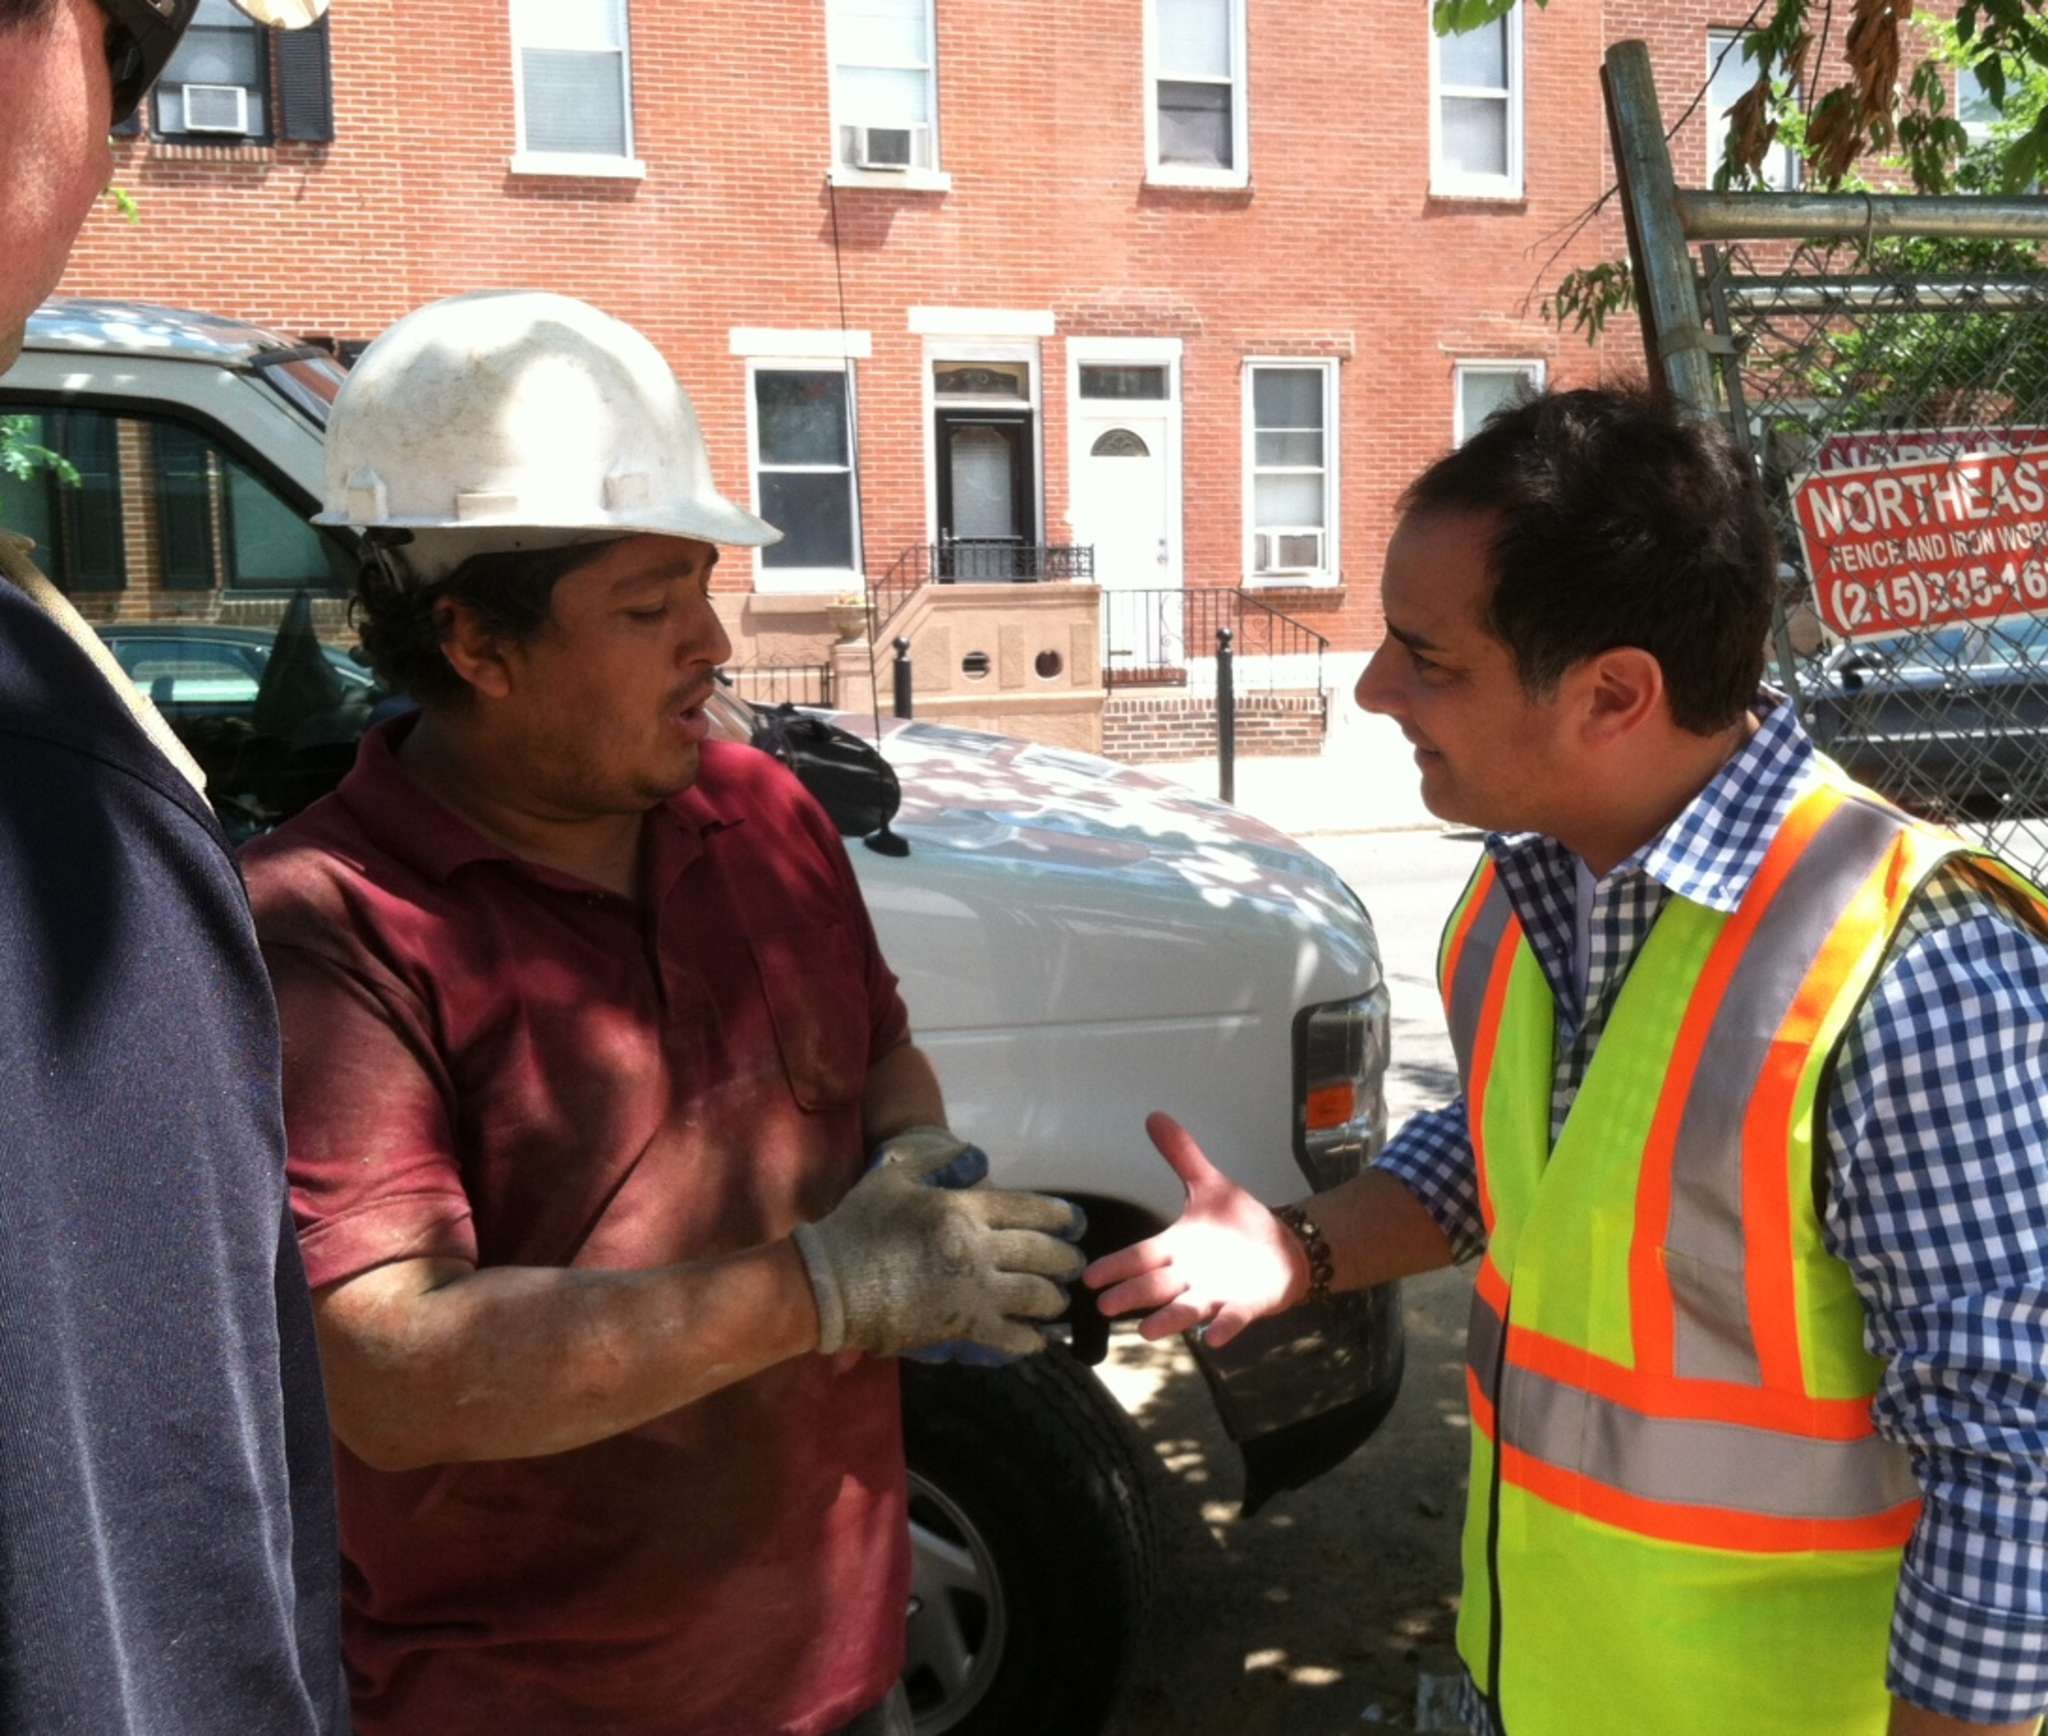 Nick DeJesse (right) talks to a construction worker at a South Philadelphia job site. DeJesse is Philadelphia director of the Occupational Safety and Health Administration.